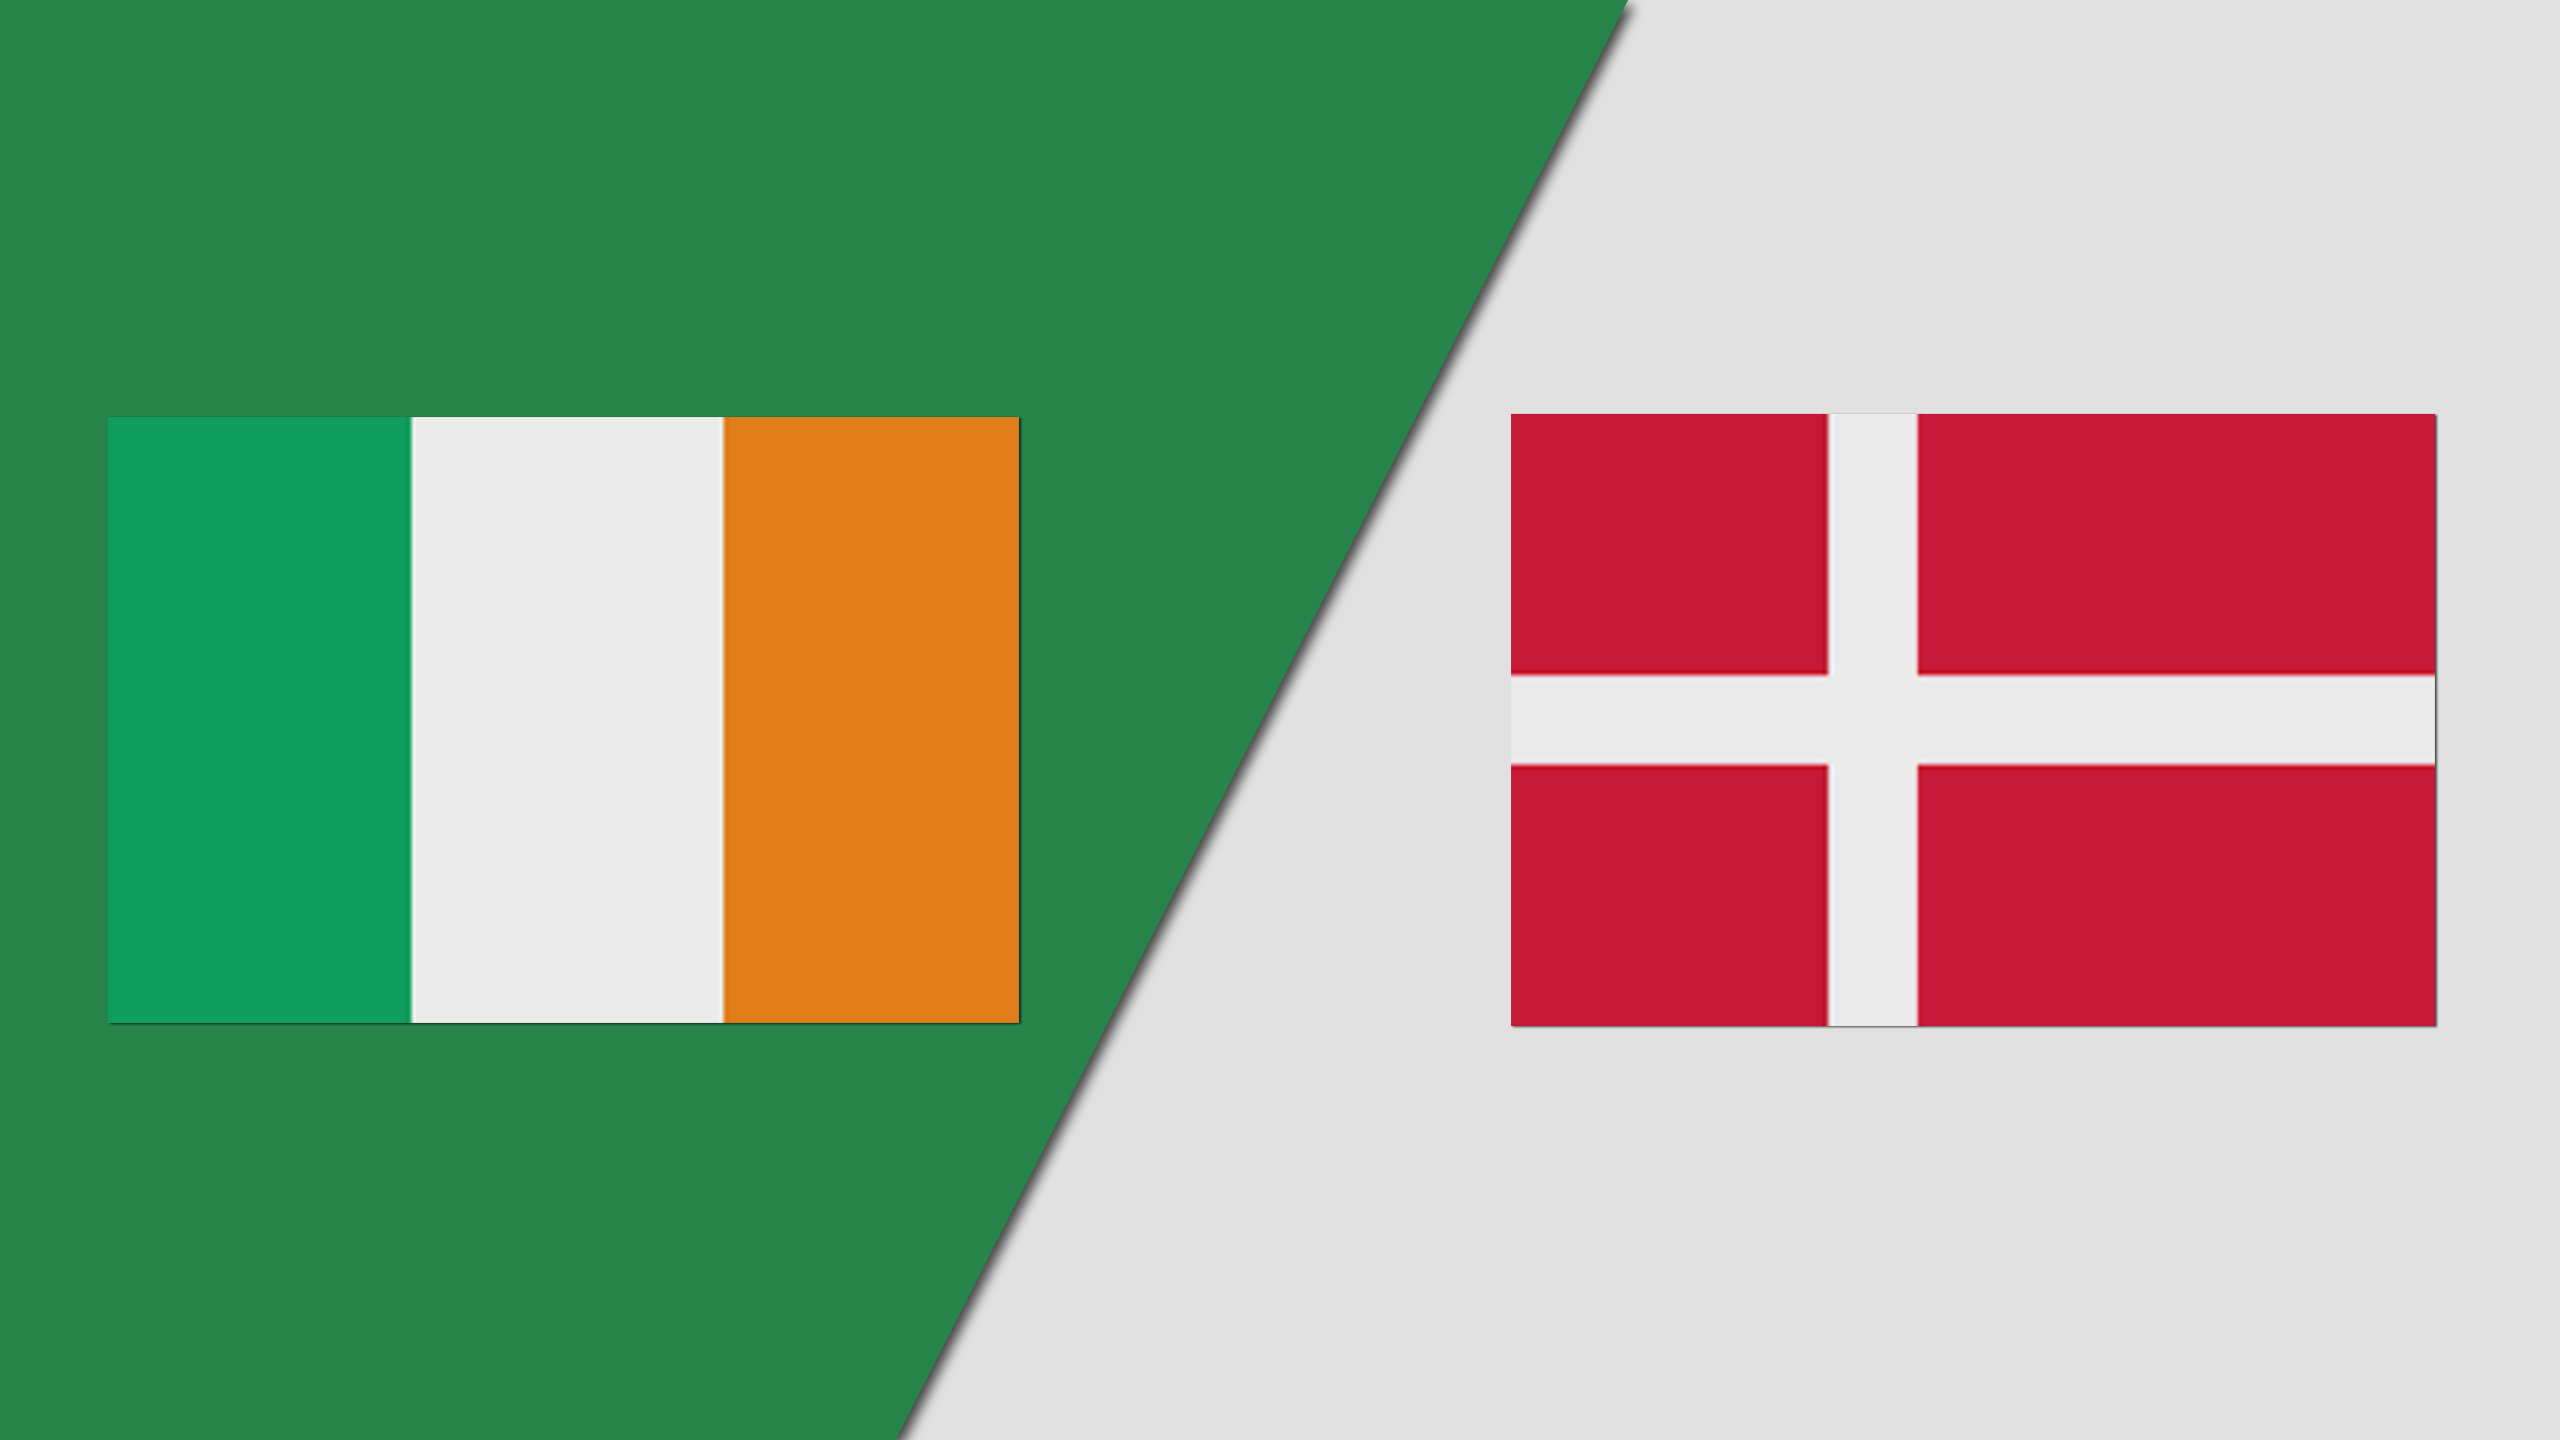 Republic of Ireland vs. Denmark (UEFA Nations League)